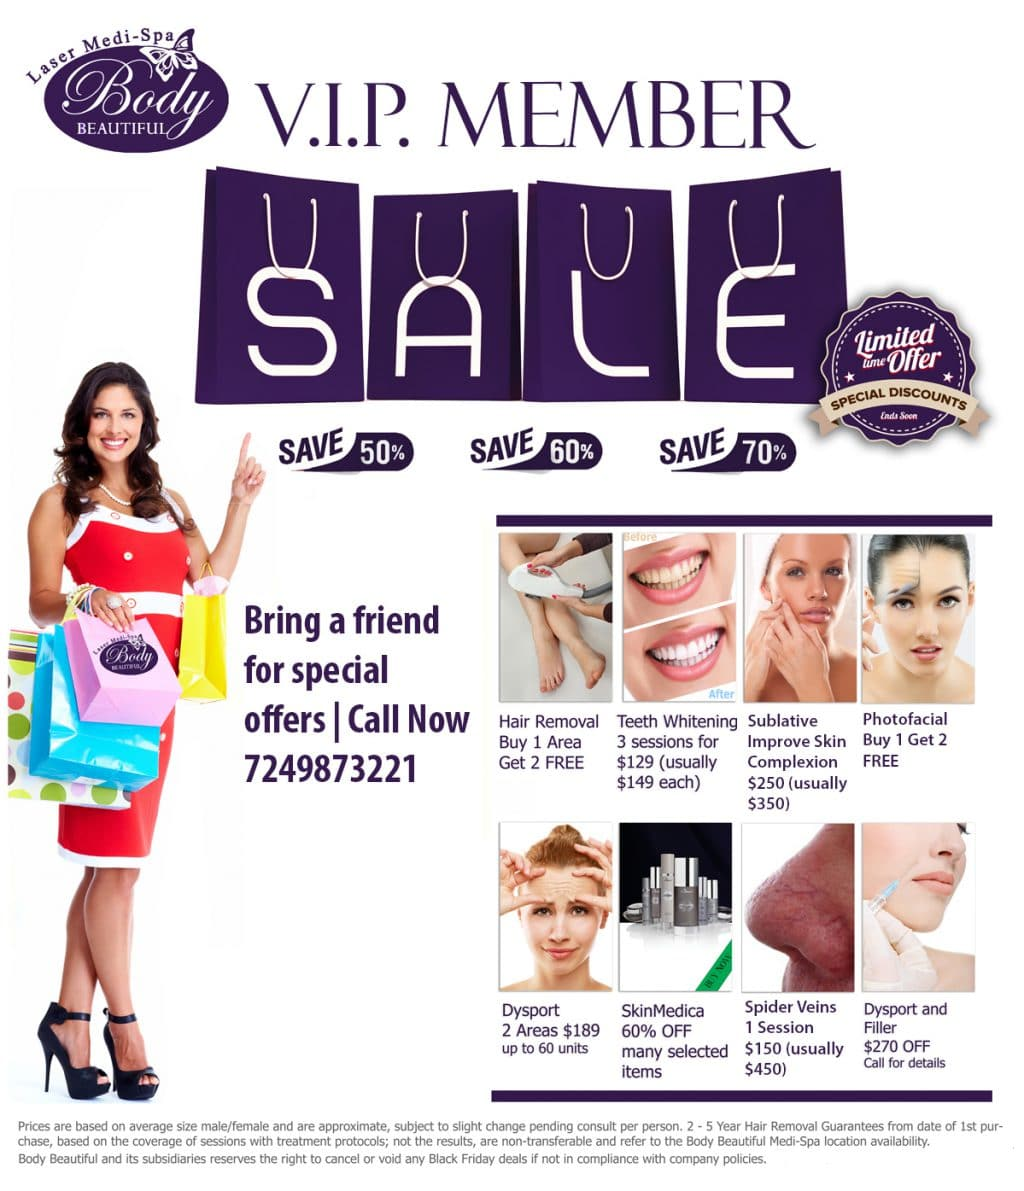 VIP Member deals, Body beautiful laser medi spa, cranberry twp pa, Latisse Product , Botox Cosmetic treatments, facial wrinkle treatments, Ultrasound treatments, Acne Awareness, Pittsburgh Medical Mall, medical providers network, medical providers, medical care providers network, medical supplies, deals, medical offers near me